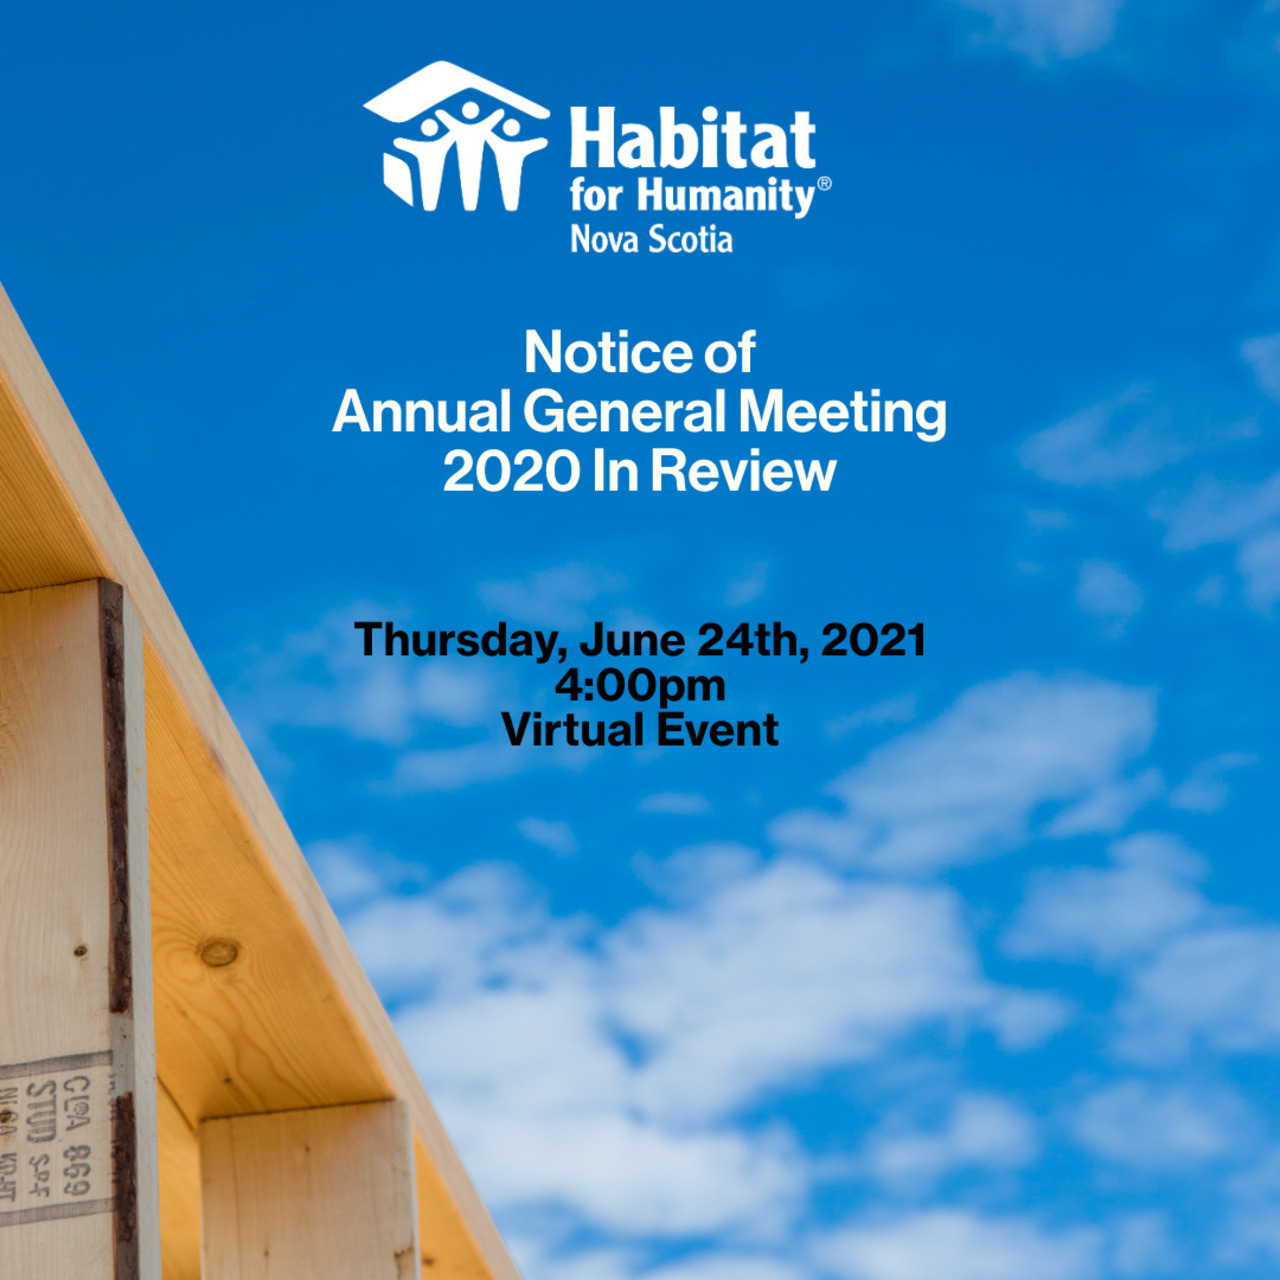 Annual General Meeting - 2020 In Review